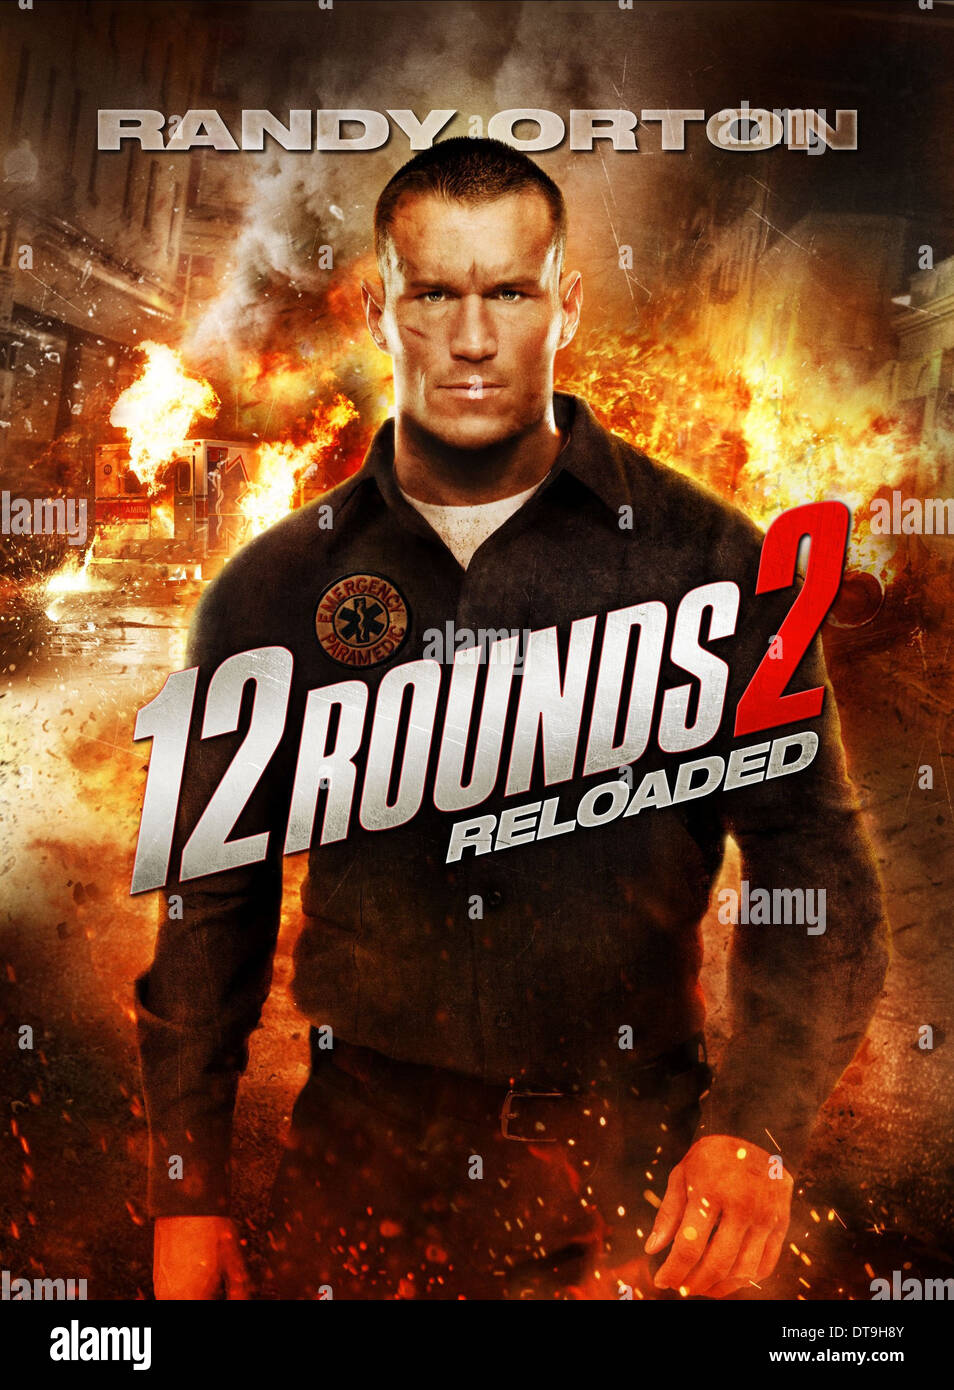 randy orton poster 12 rounds reloaded 2013 stock photo